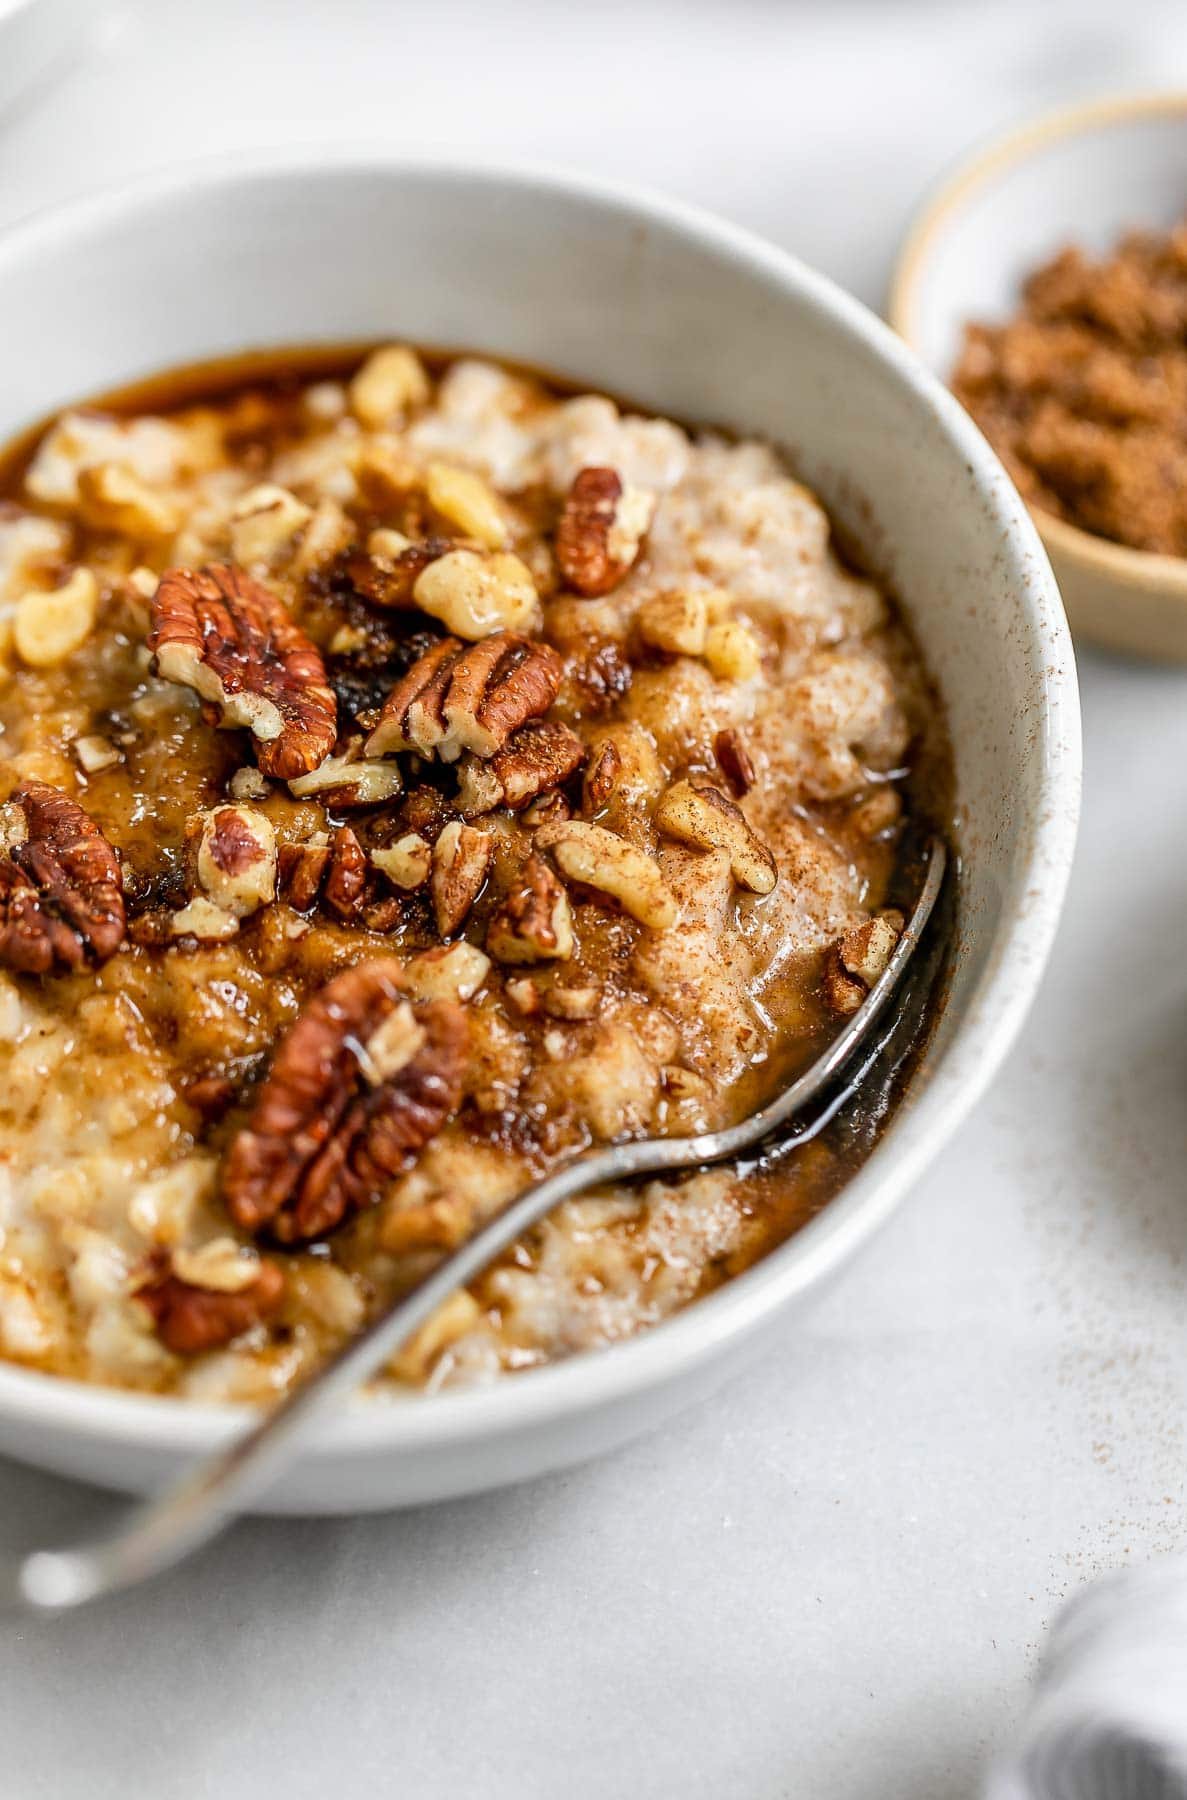 Up close image of the oatmeal with cinnamon and sugar on top.